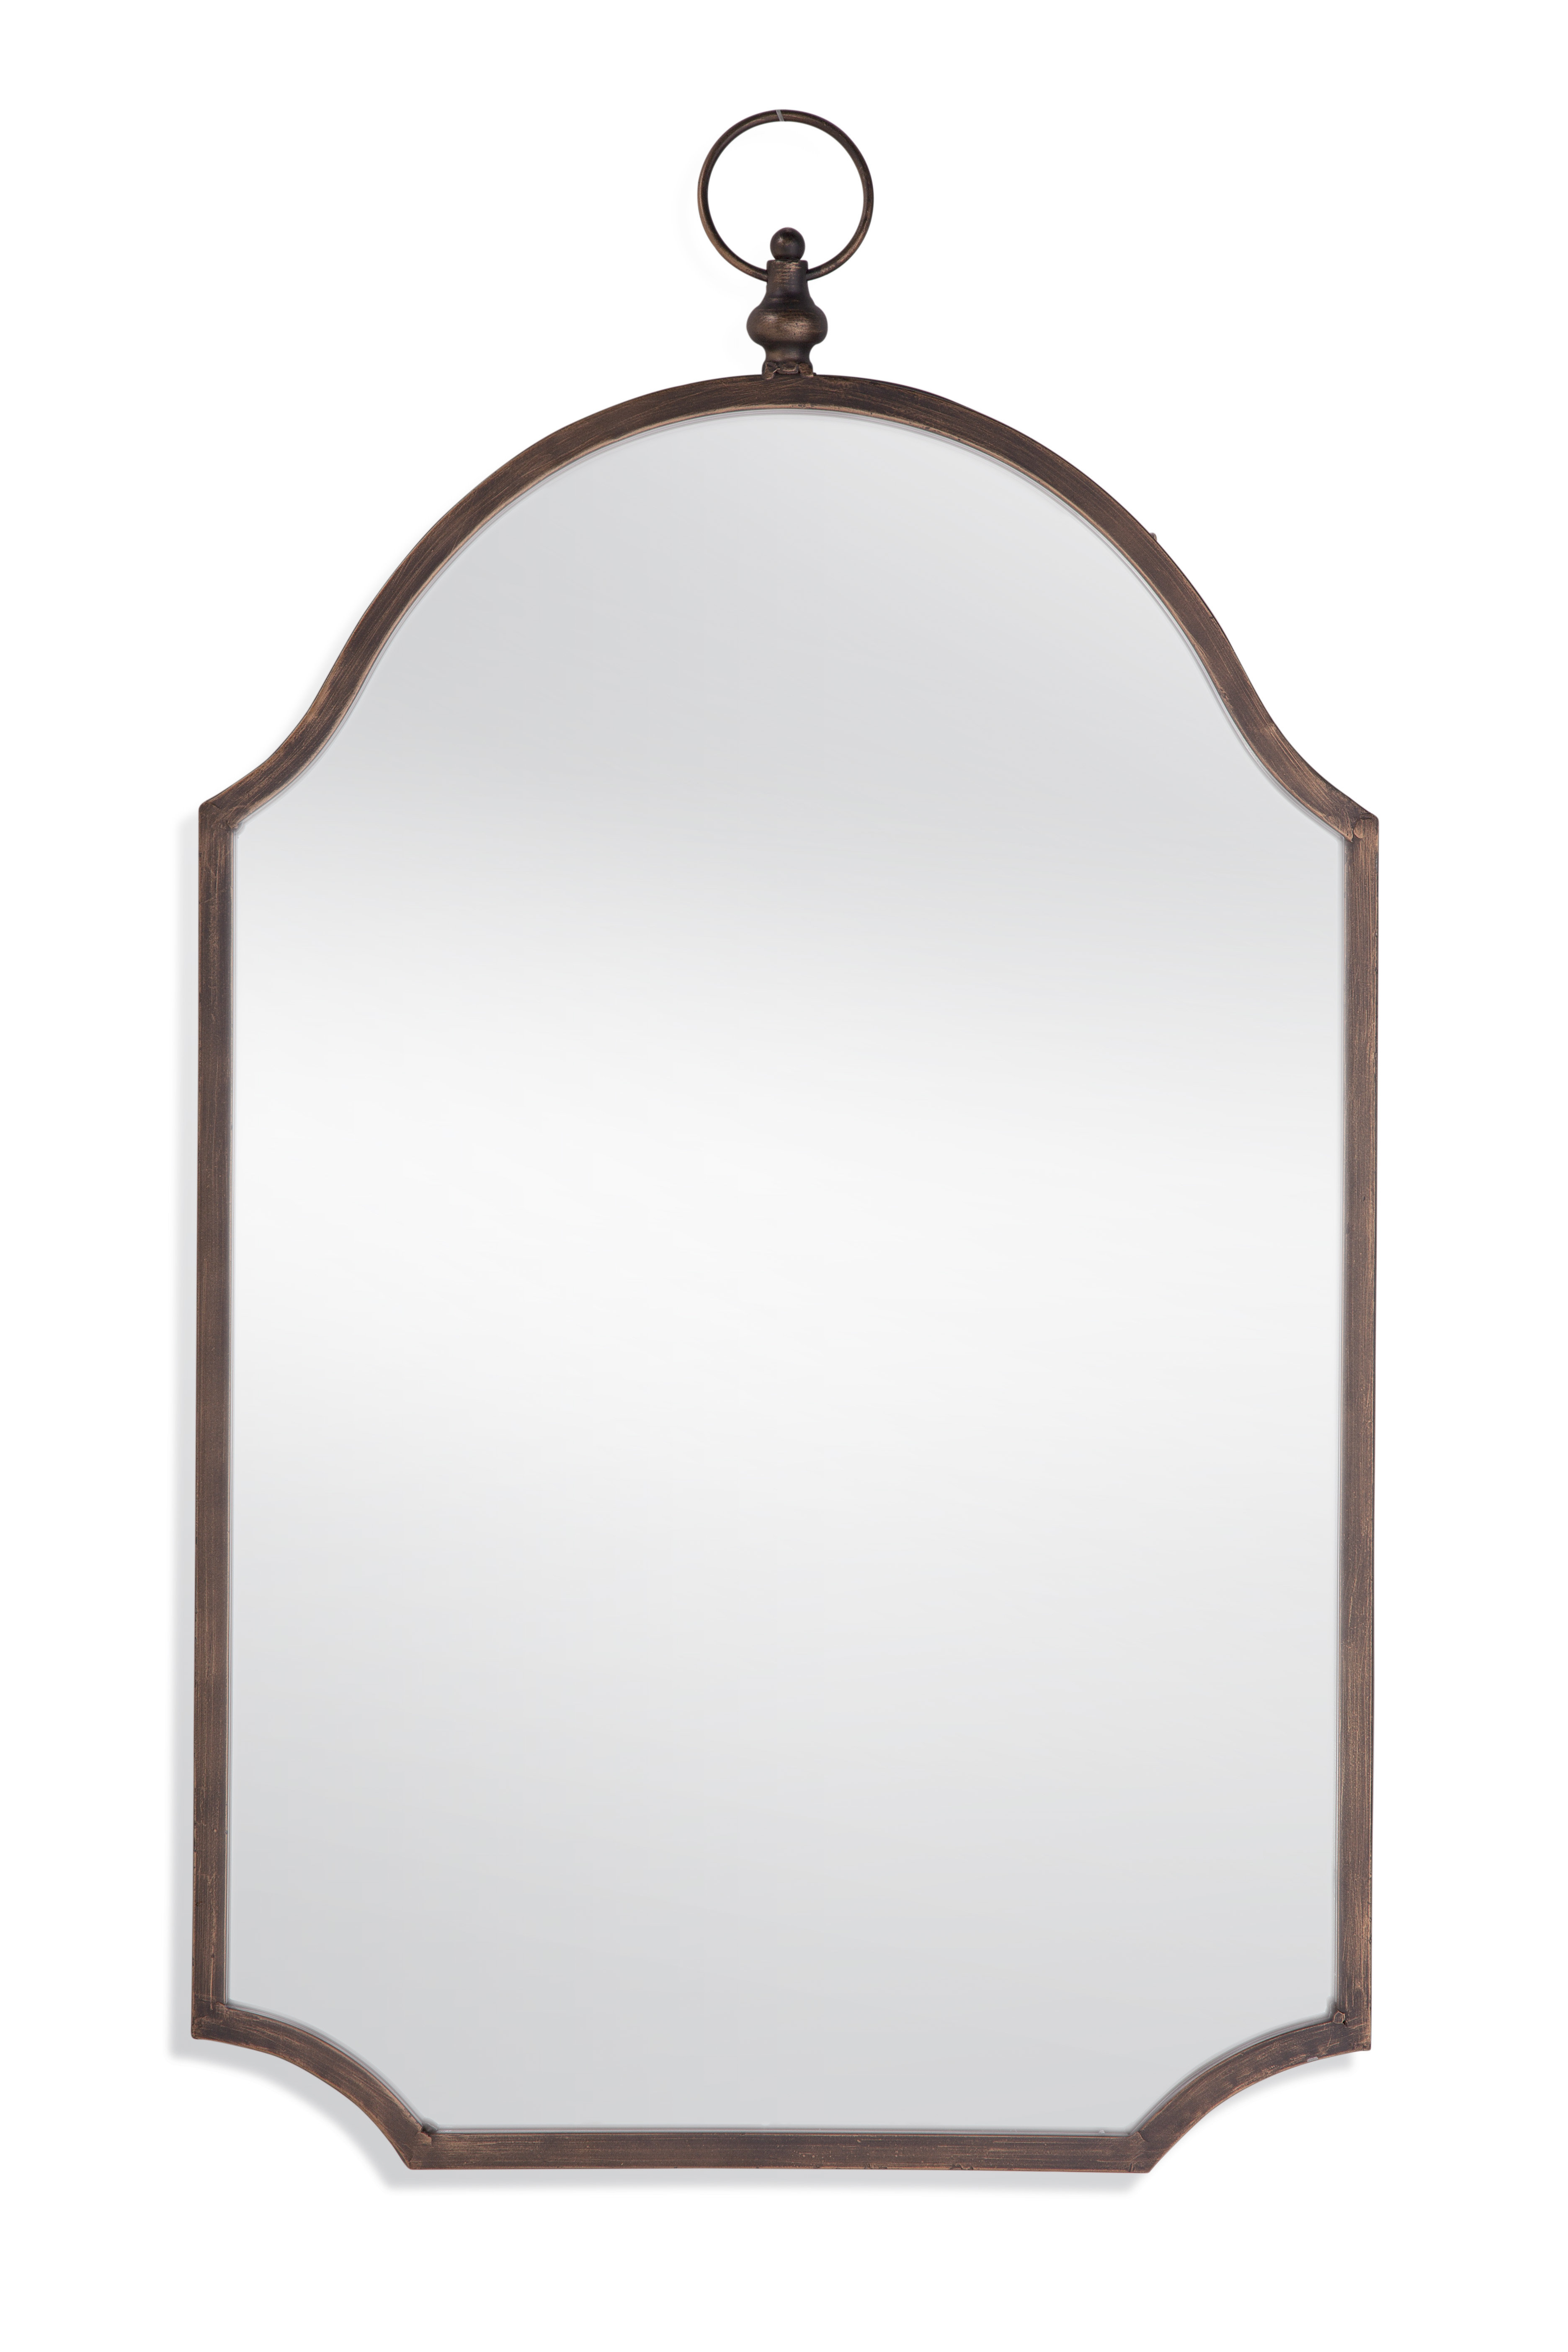 Inglaterra Accent Mirror In Morlan Accent Mirrors (View 8 of 20)